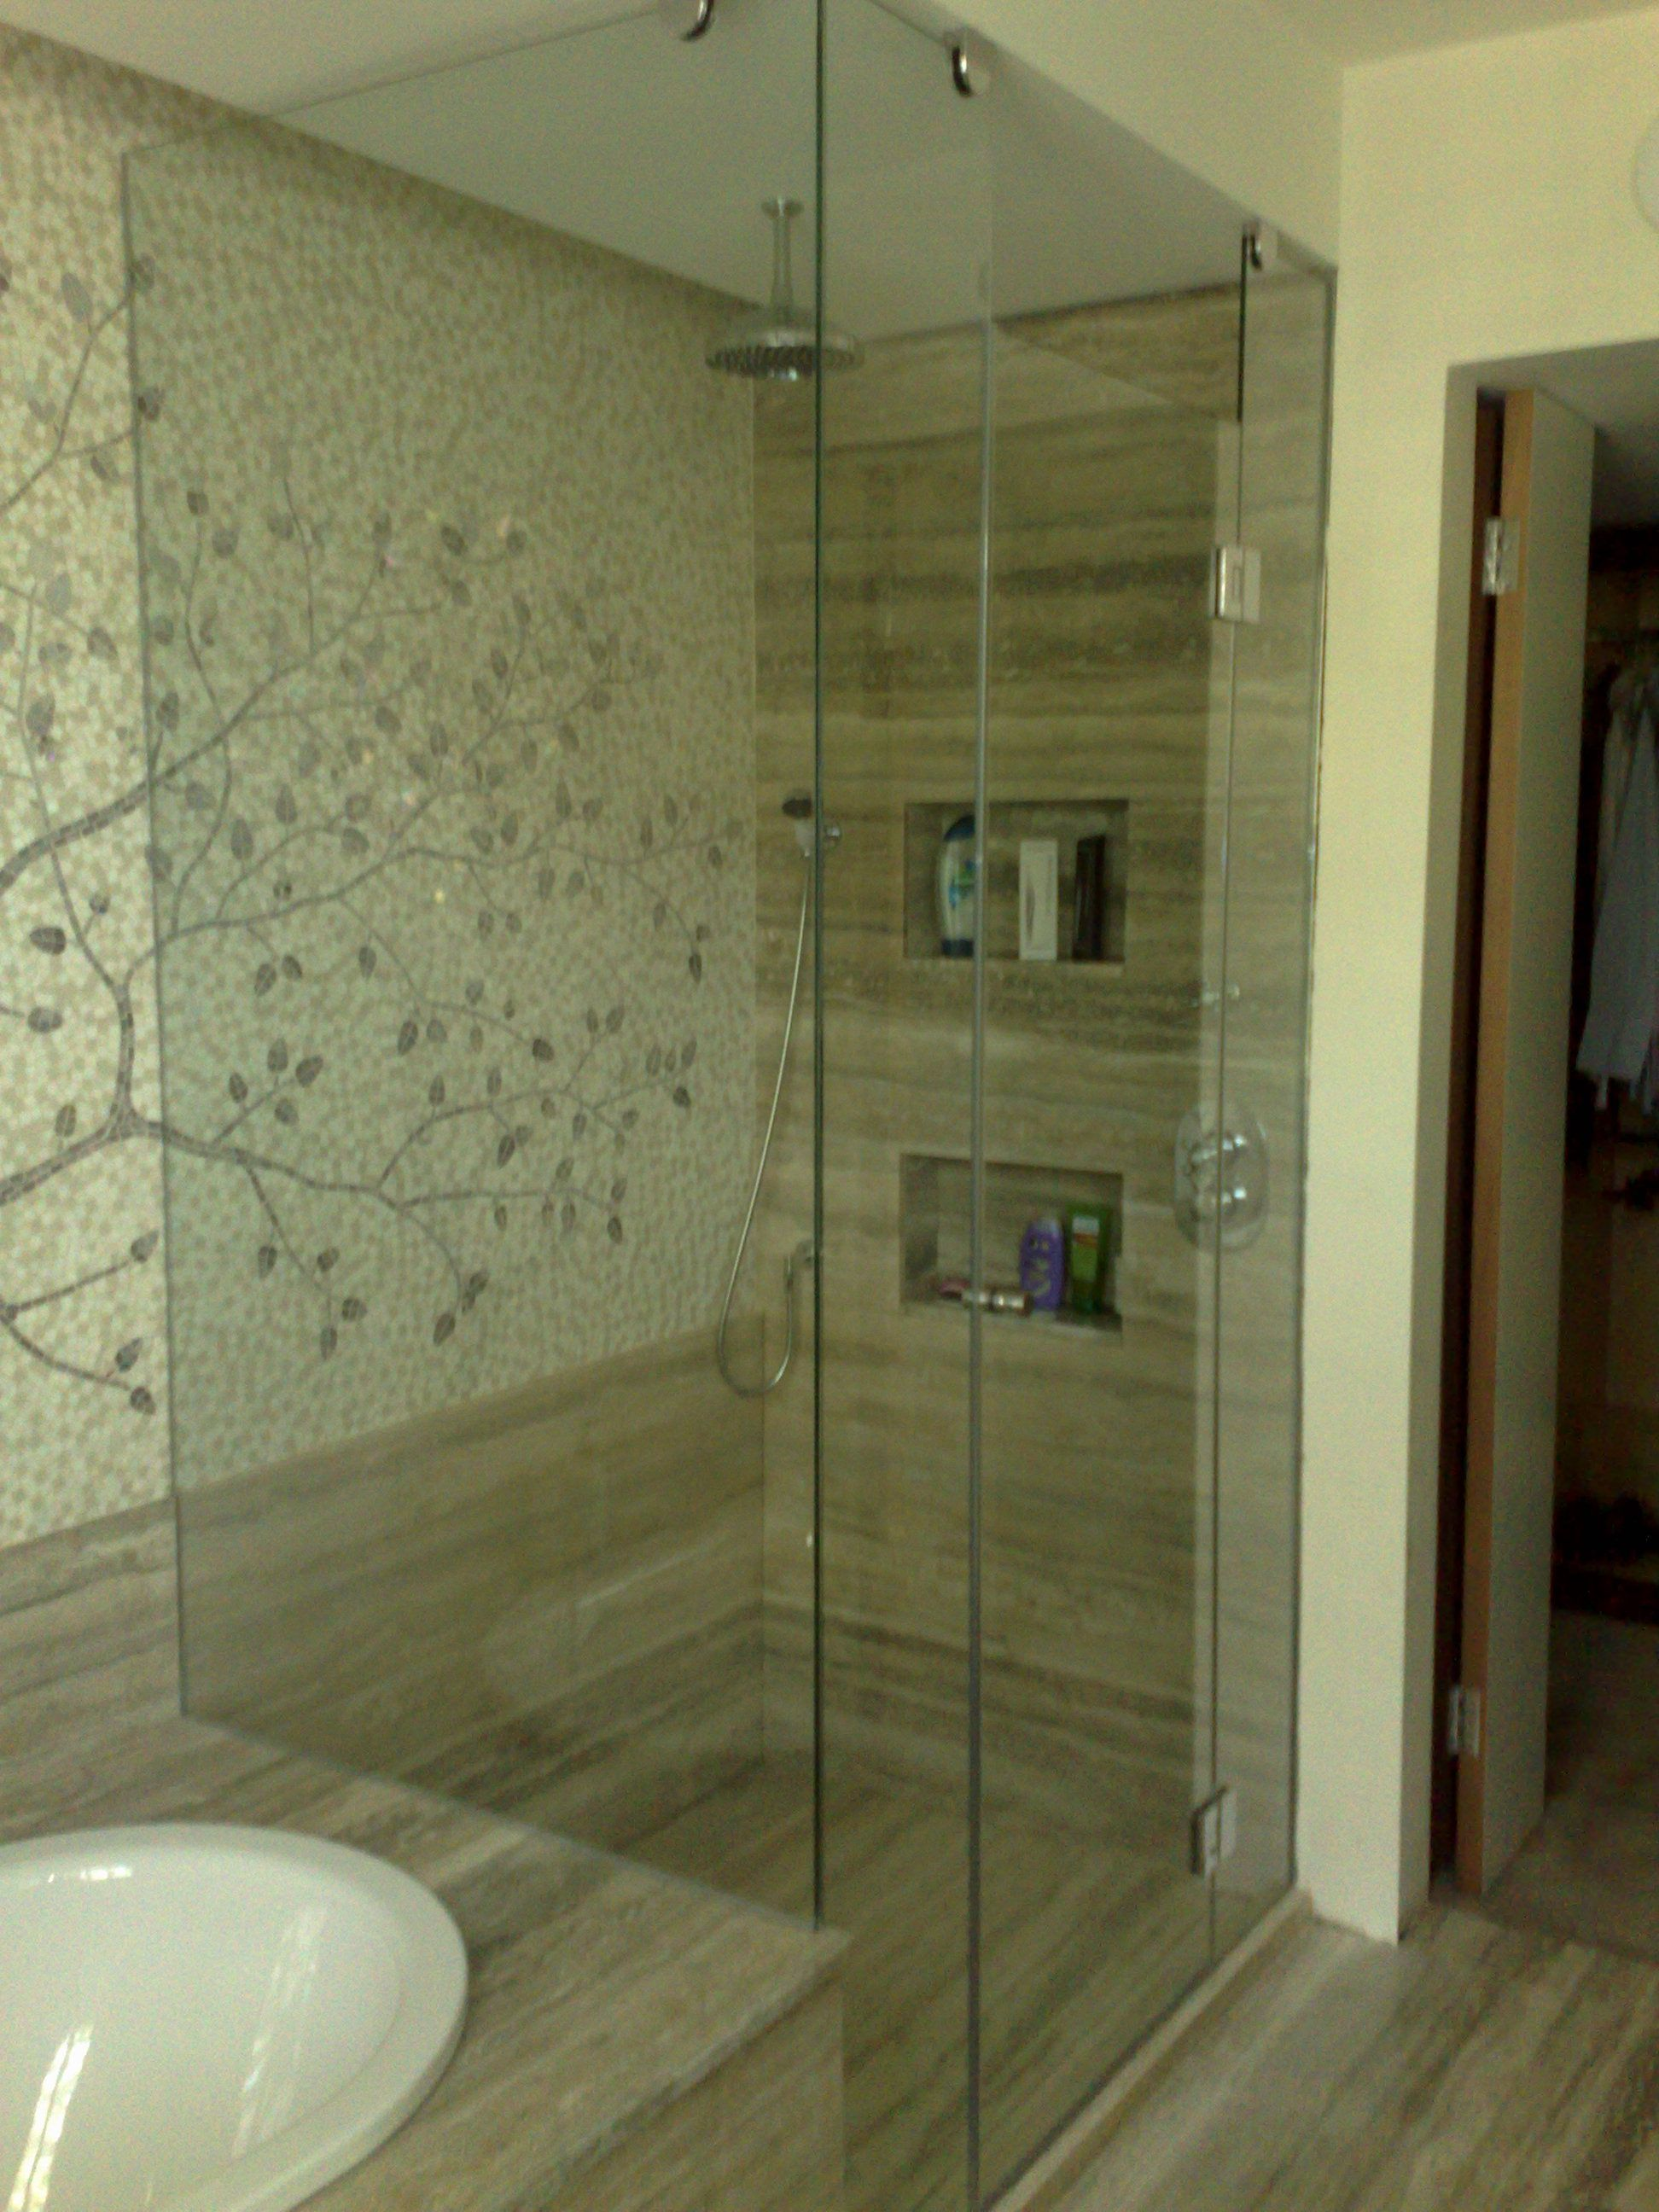 glass shower cubicle | My Loving Home Ideas | Pinterest | Shower ...